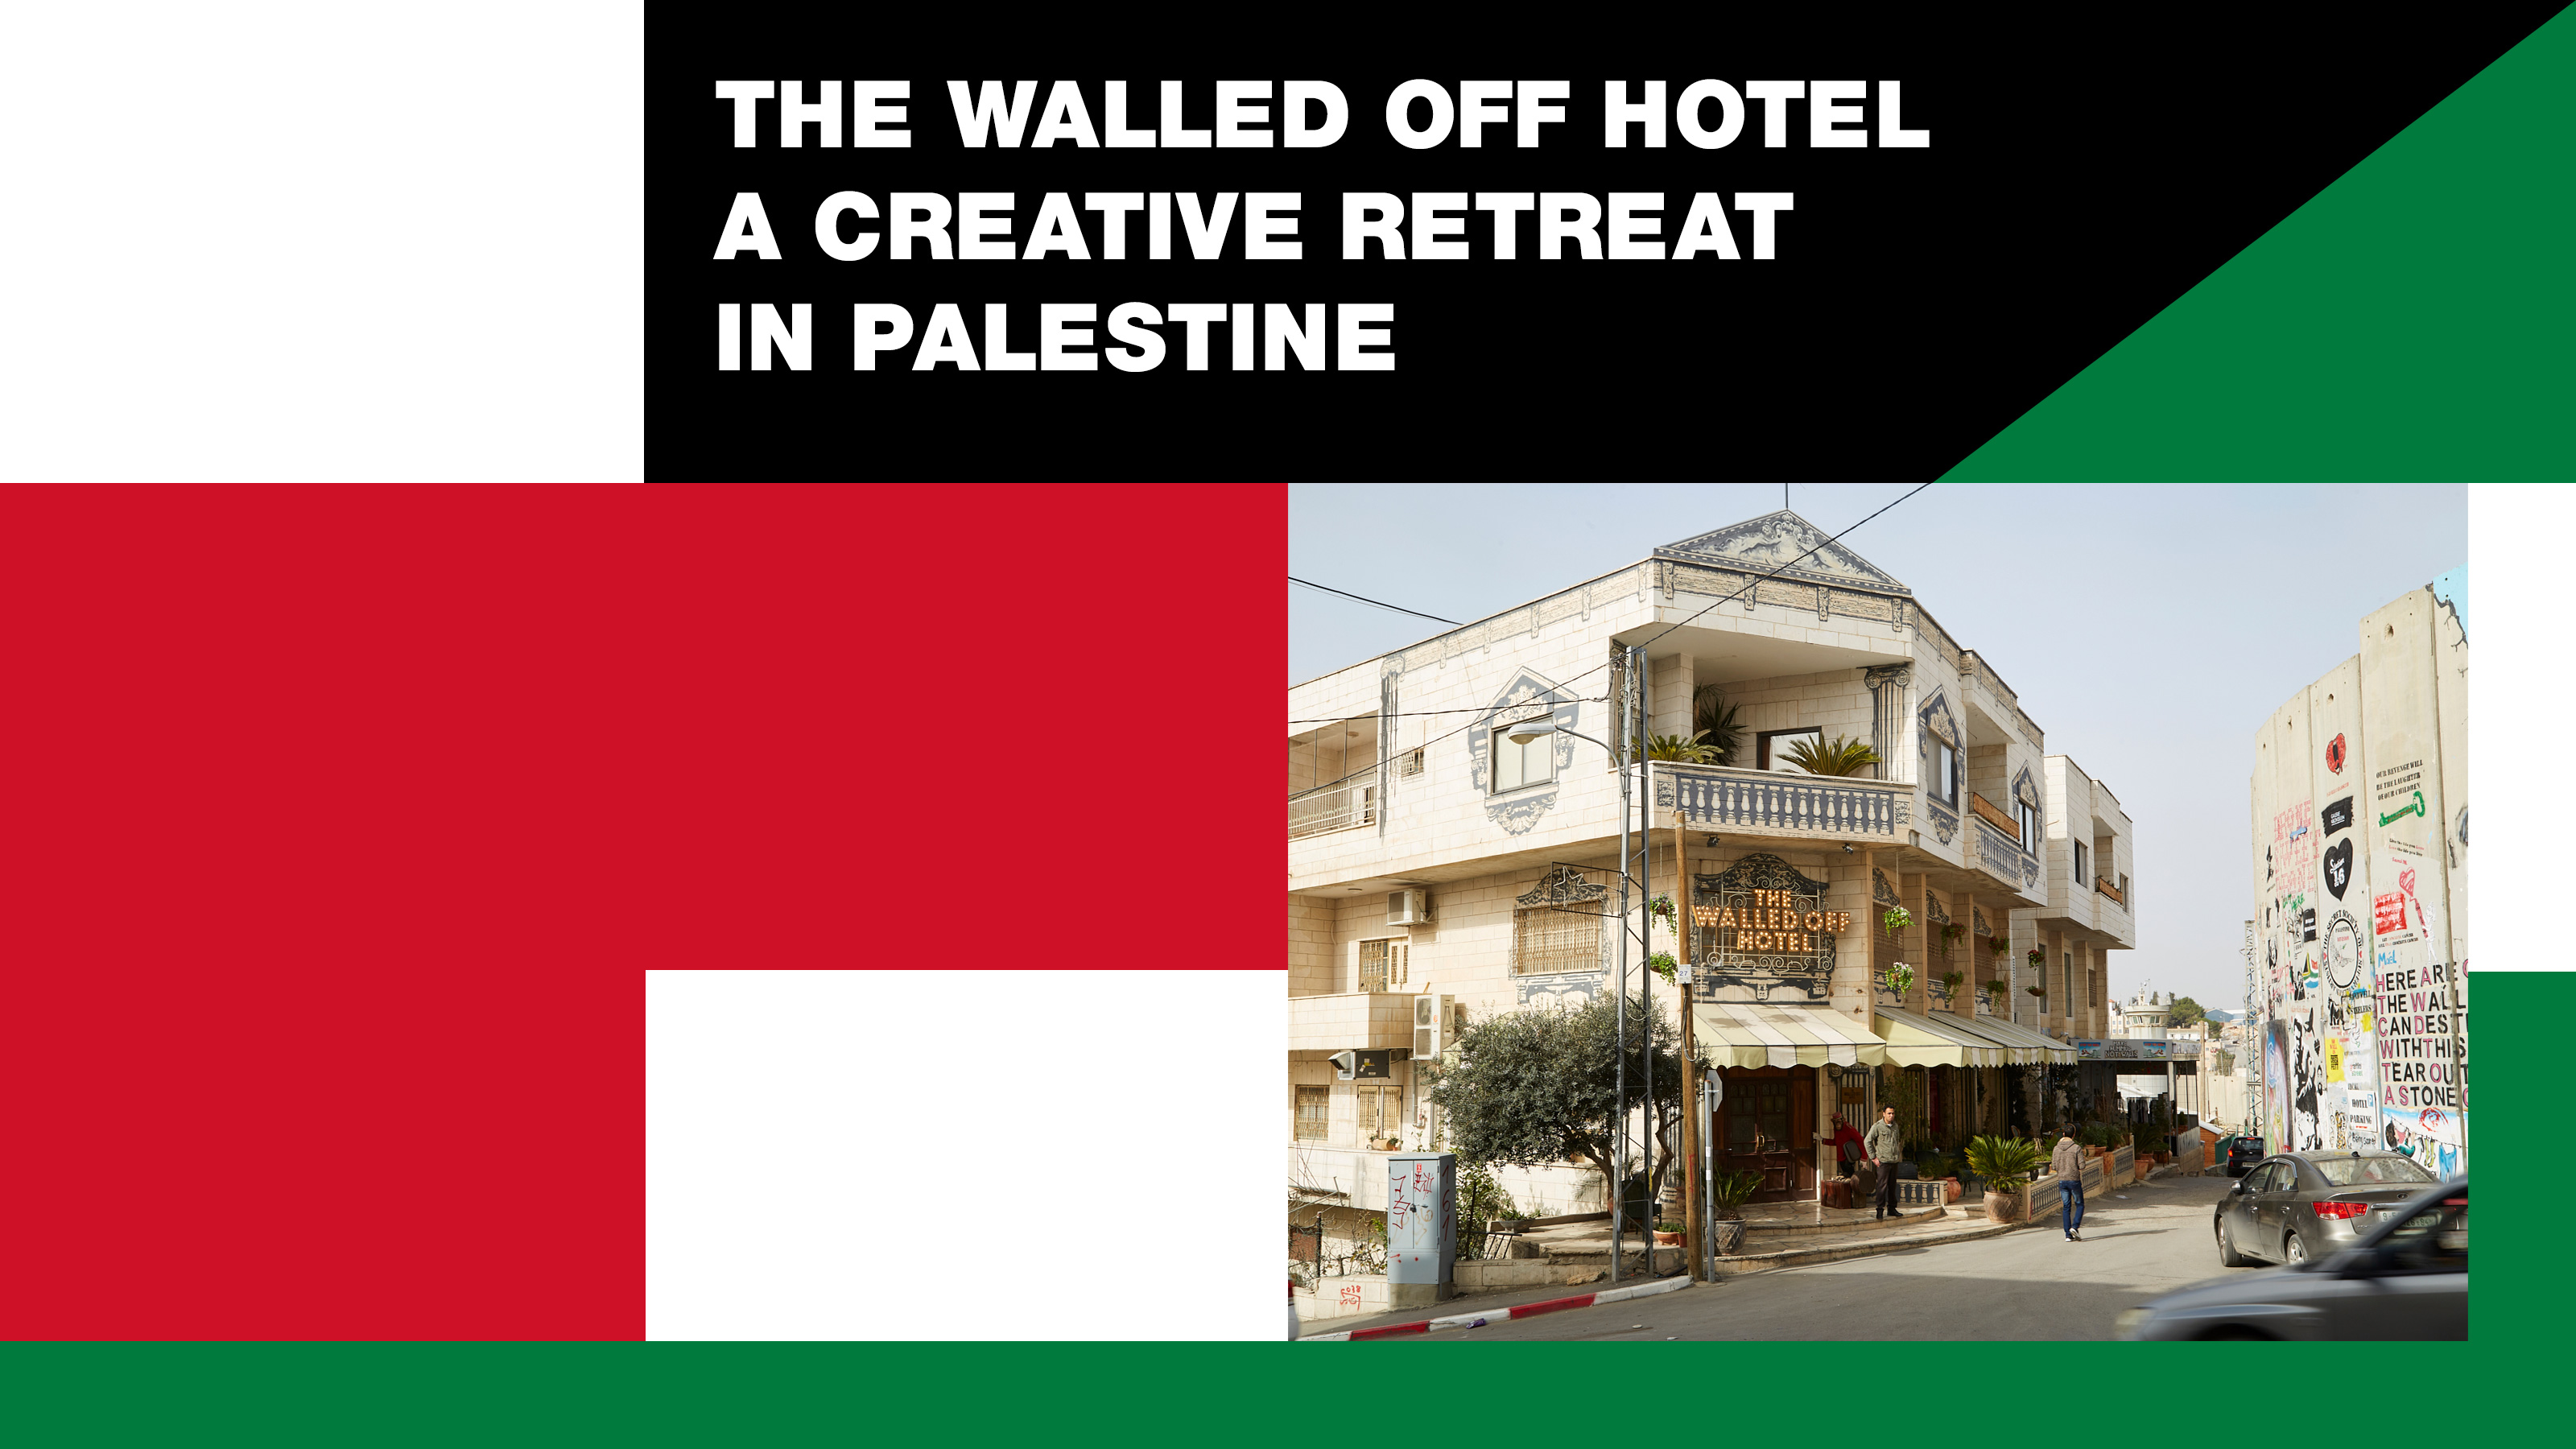 The Walled Off Hotel: A creative retreat in Palestine